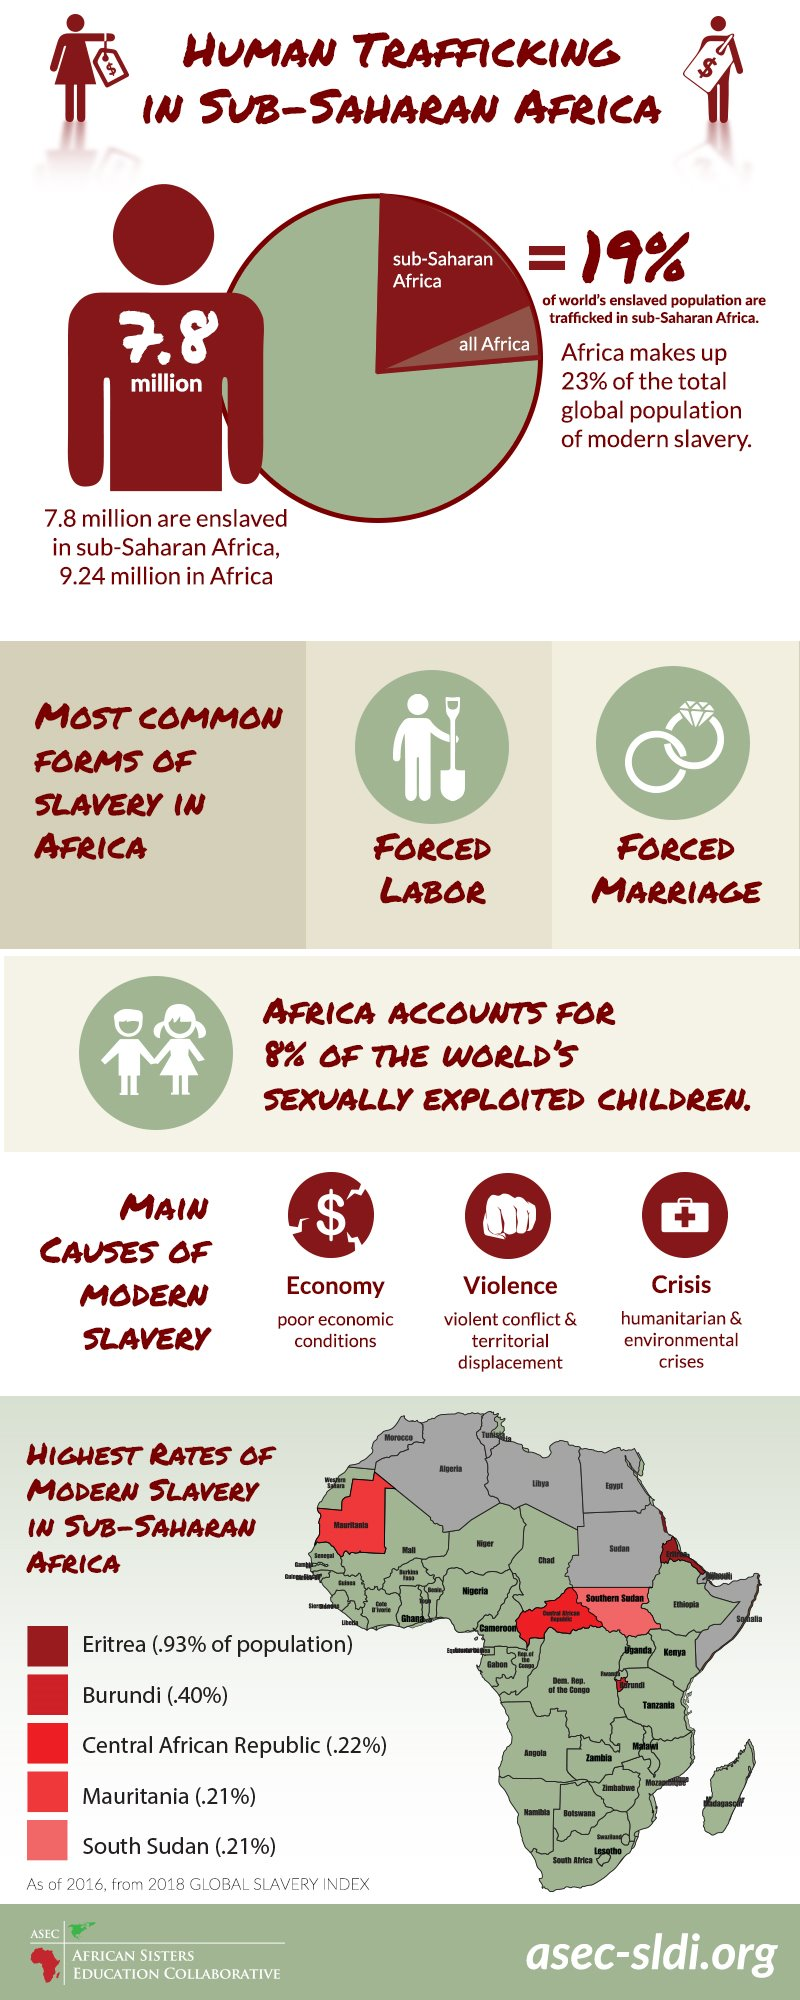 Infographic Human Trafficking in Sub-Saharan Africa